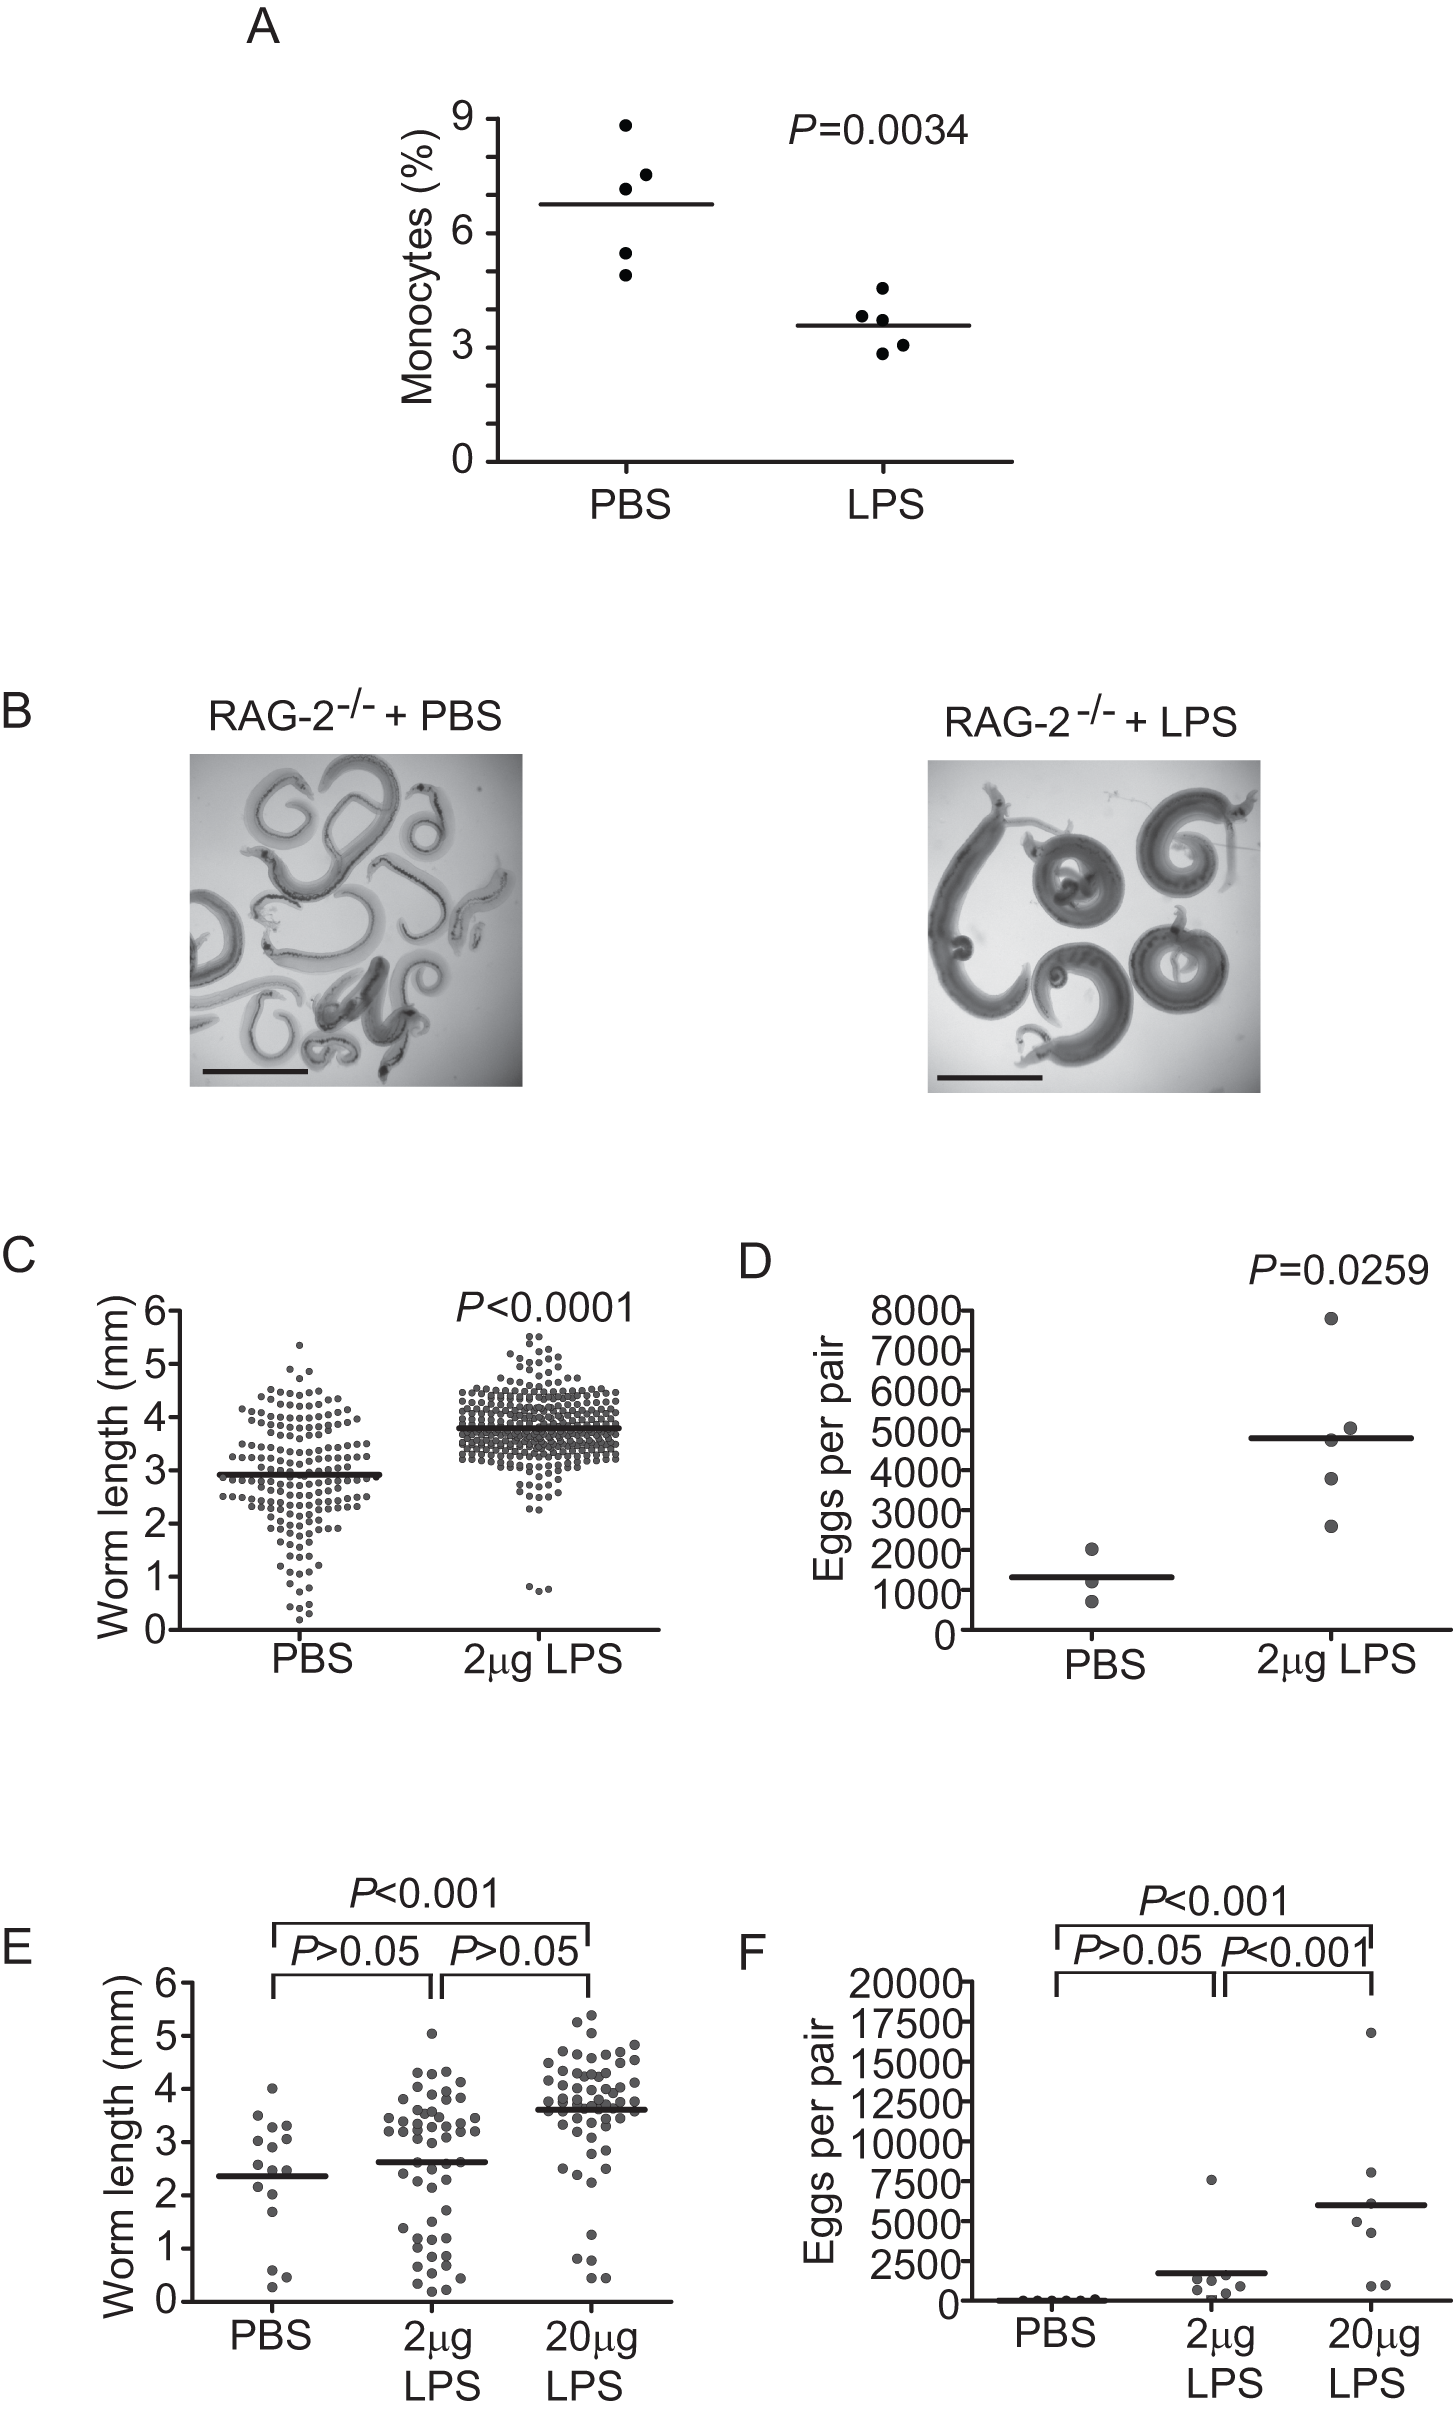 TLR ligand-induced maturation of mononuclear cells facilitates <i>S. mansoni</i> development.